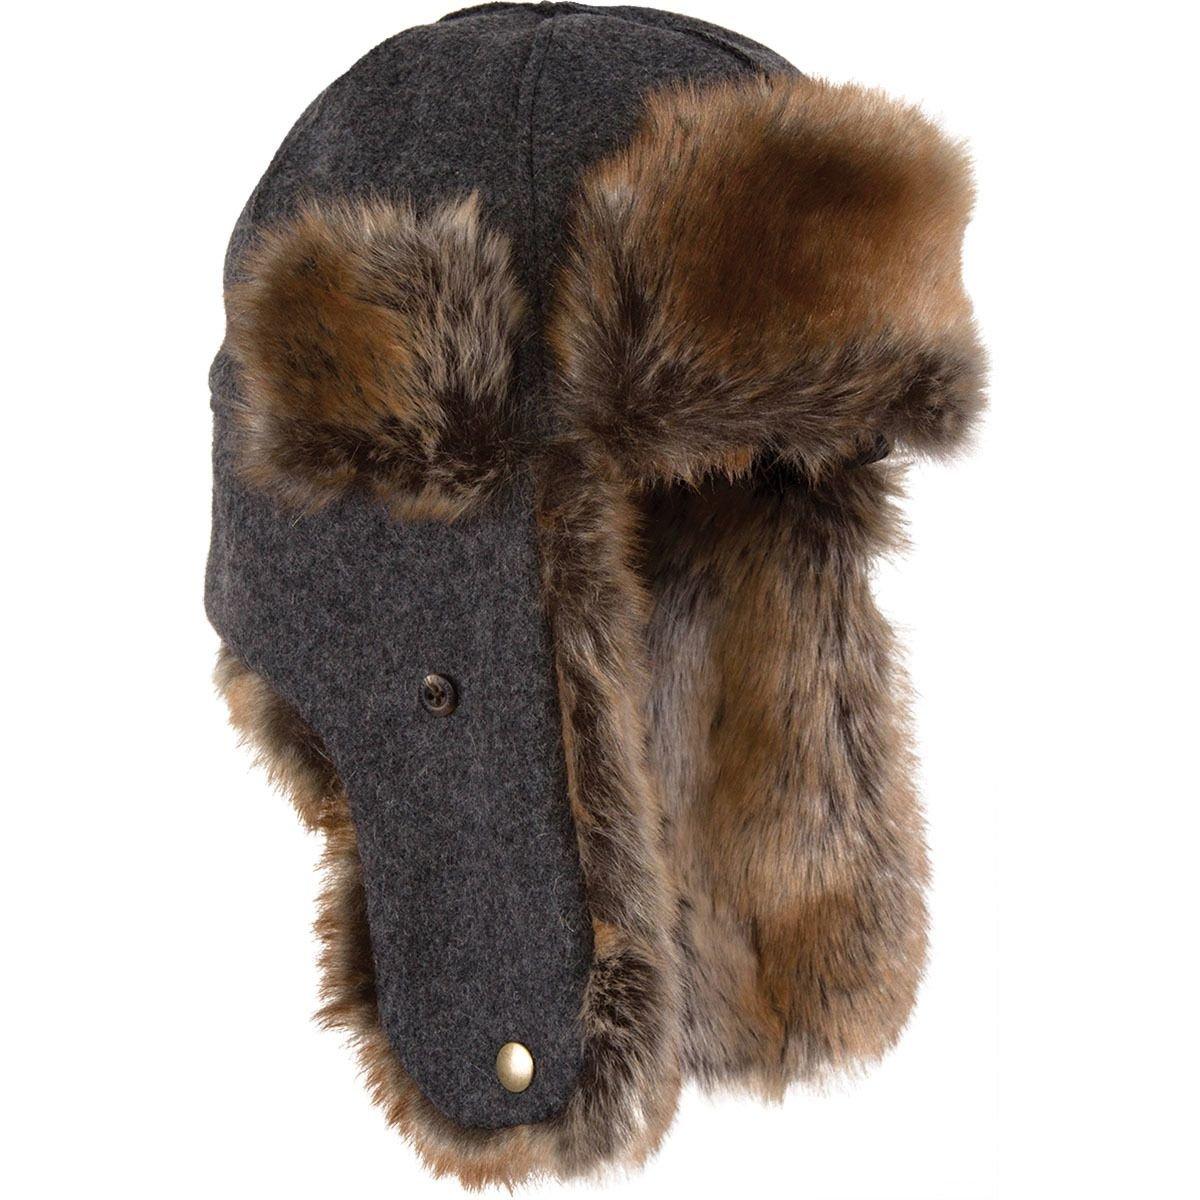 Stormy Kromer The Northwoods Trapper Hat, Color: Charcoal, Size: Xl (51210-00007